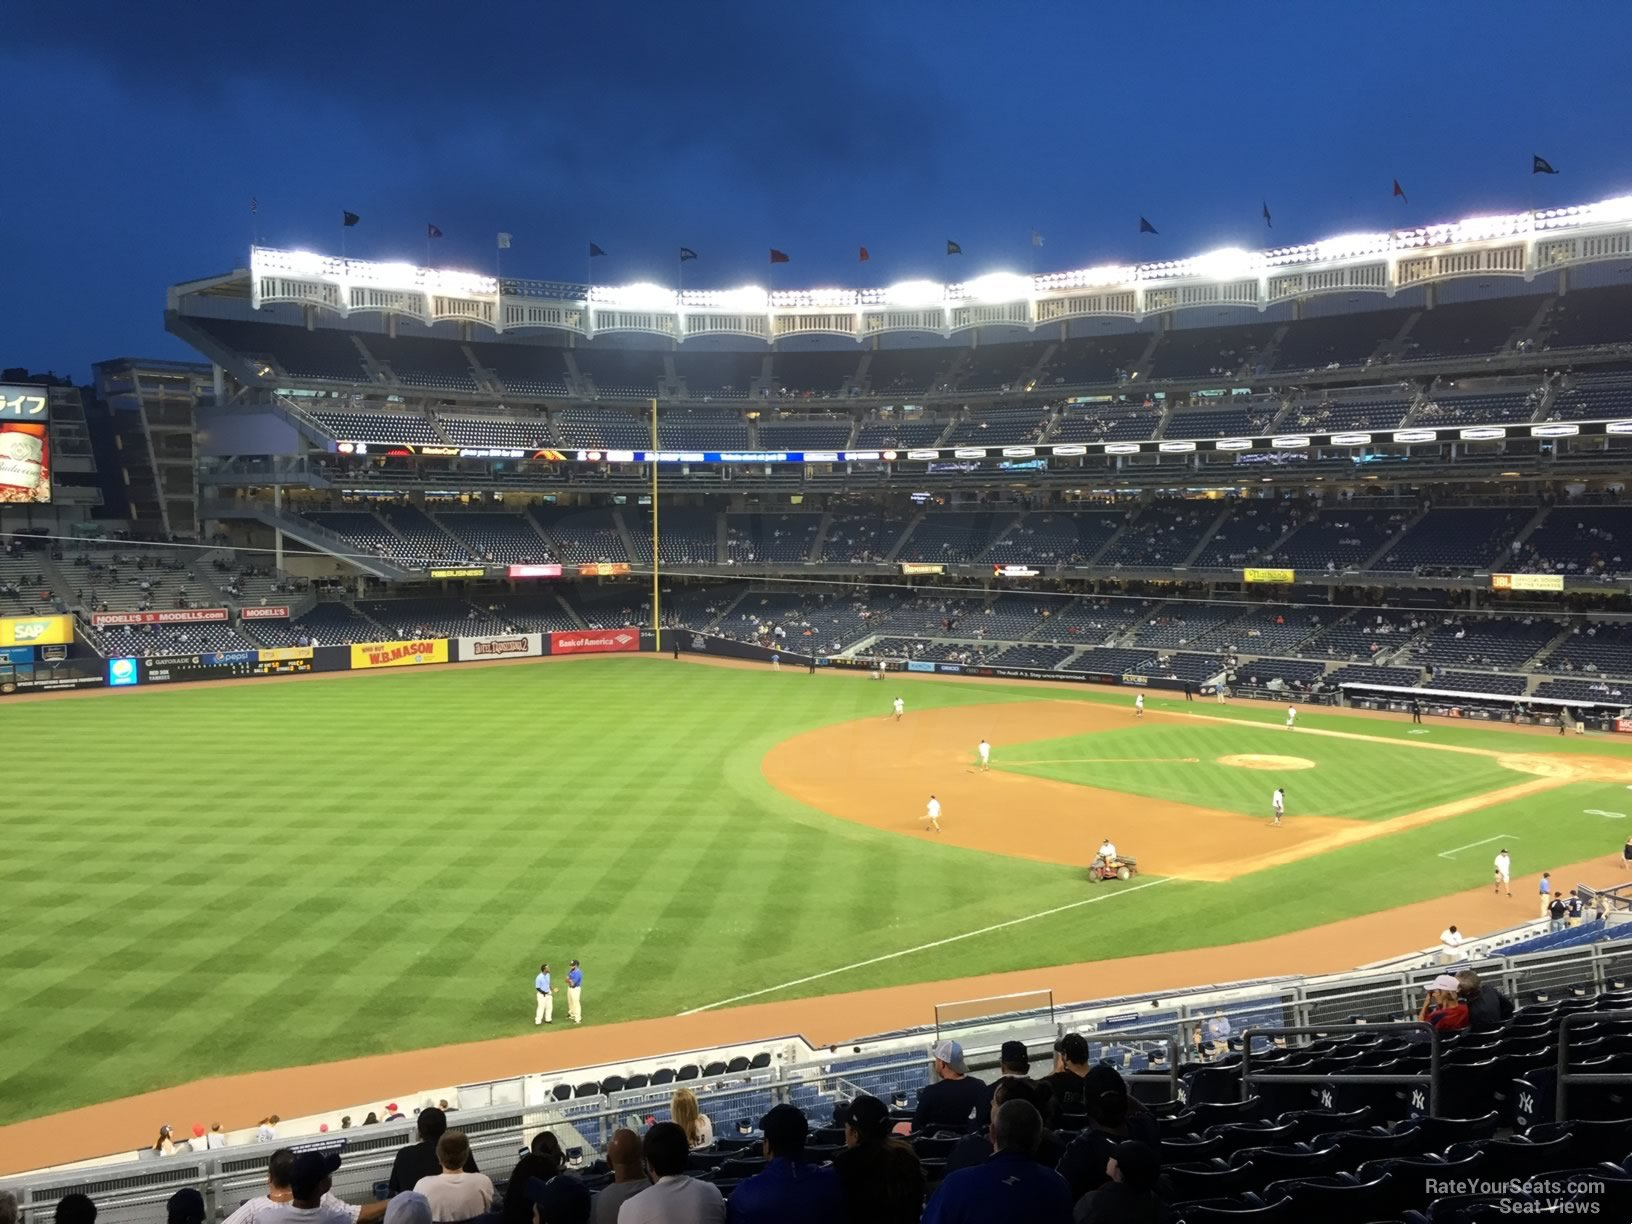 New York Yankees Seat View for Yankee Stadium Section 229, Row 13